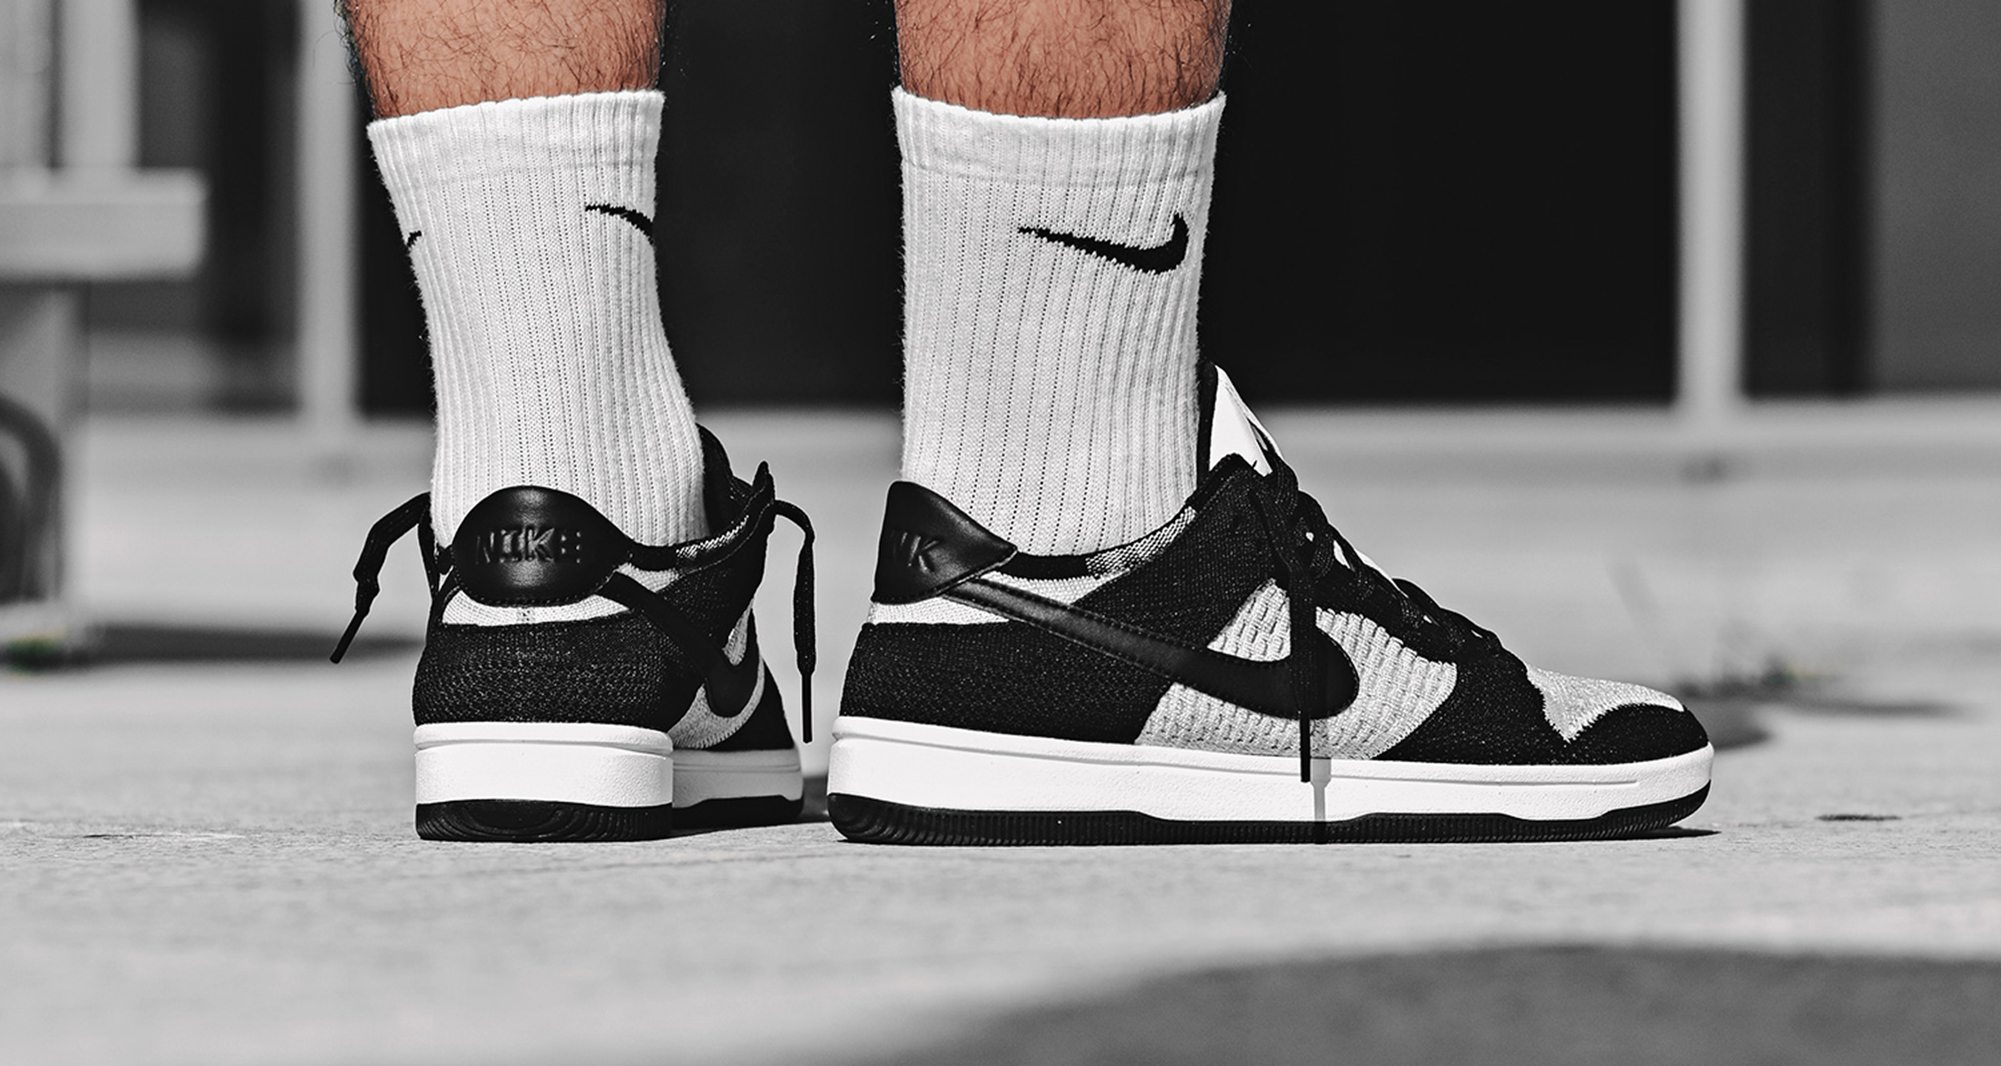 ca6c38e2e474f Nike Dunk Low Flyknit Black White    Available Now